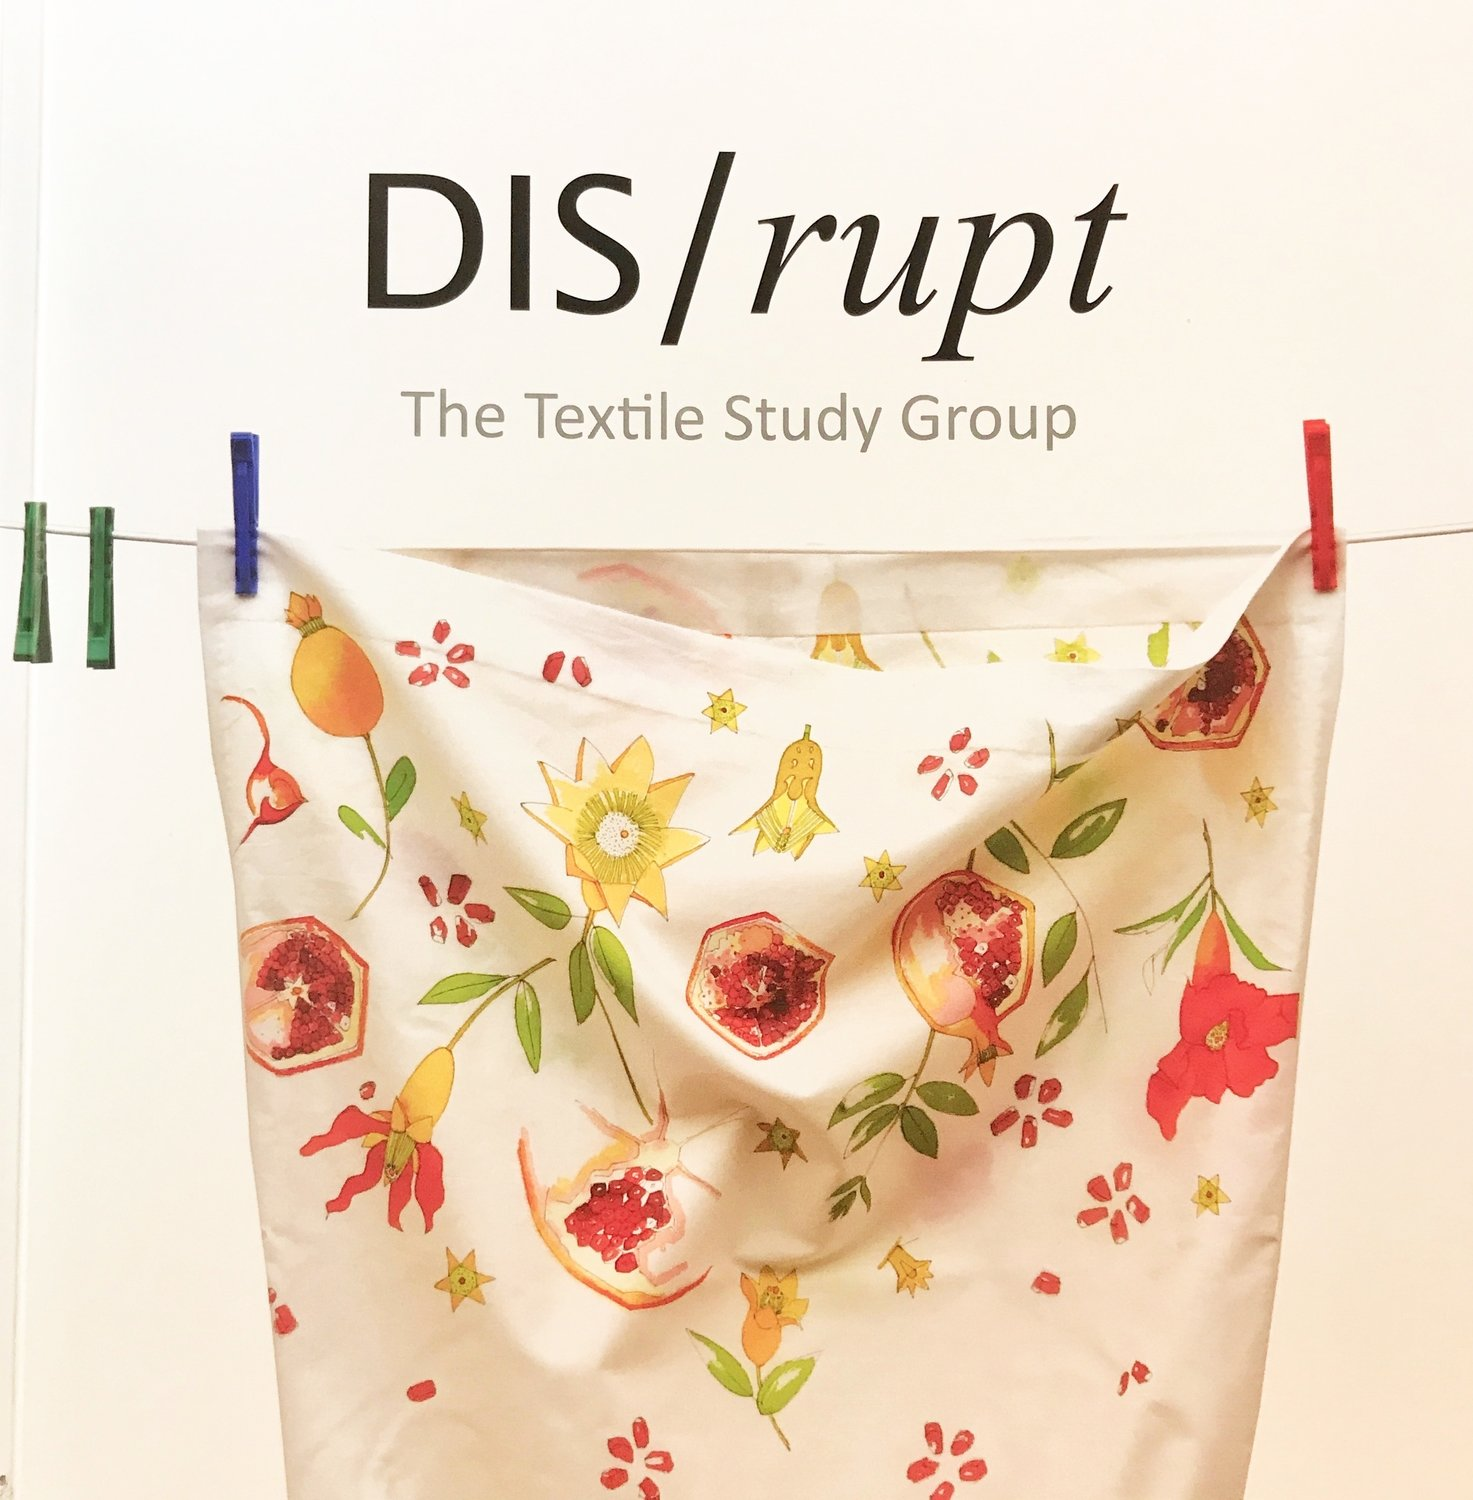 DIS/rupt catalogue